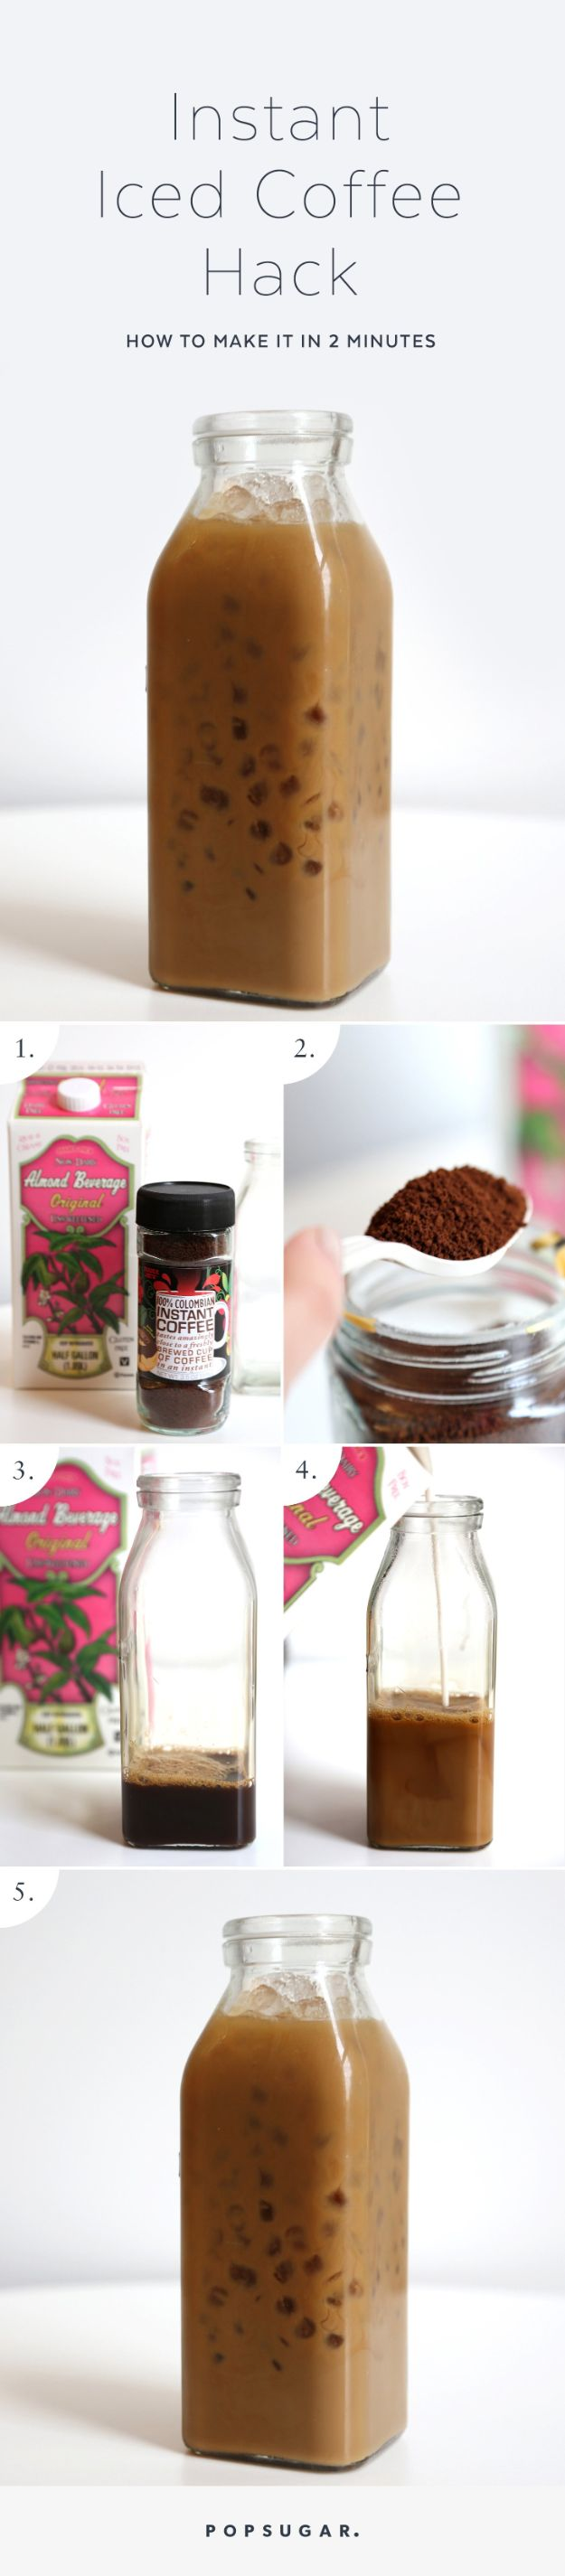 DIY Ideas for The Coffee Lover - Instant Iced Coffee Hack - Easy and Cool Gift Ideas for People Who Love Coffee Drinks - Coaster, Cups and Mugs, Tumblers, Canisters and Do It Yourself Gift Ideas - Gift Jars and Baskets, Fun Presents to Make for Mom, Dad and Friends http://diyjoy.com/diy-ideas-coffee-lover